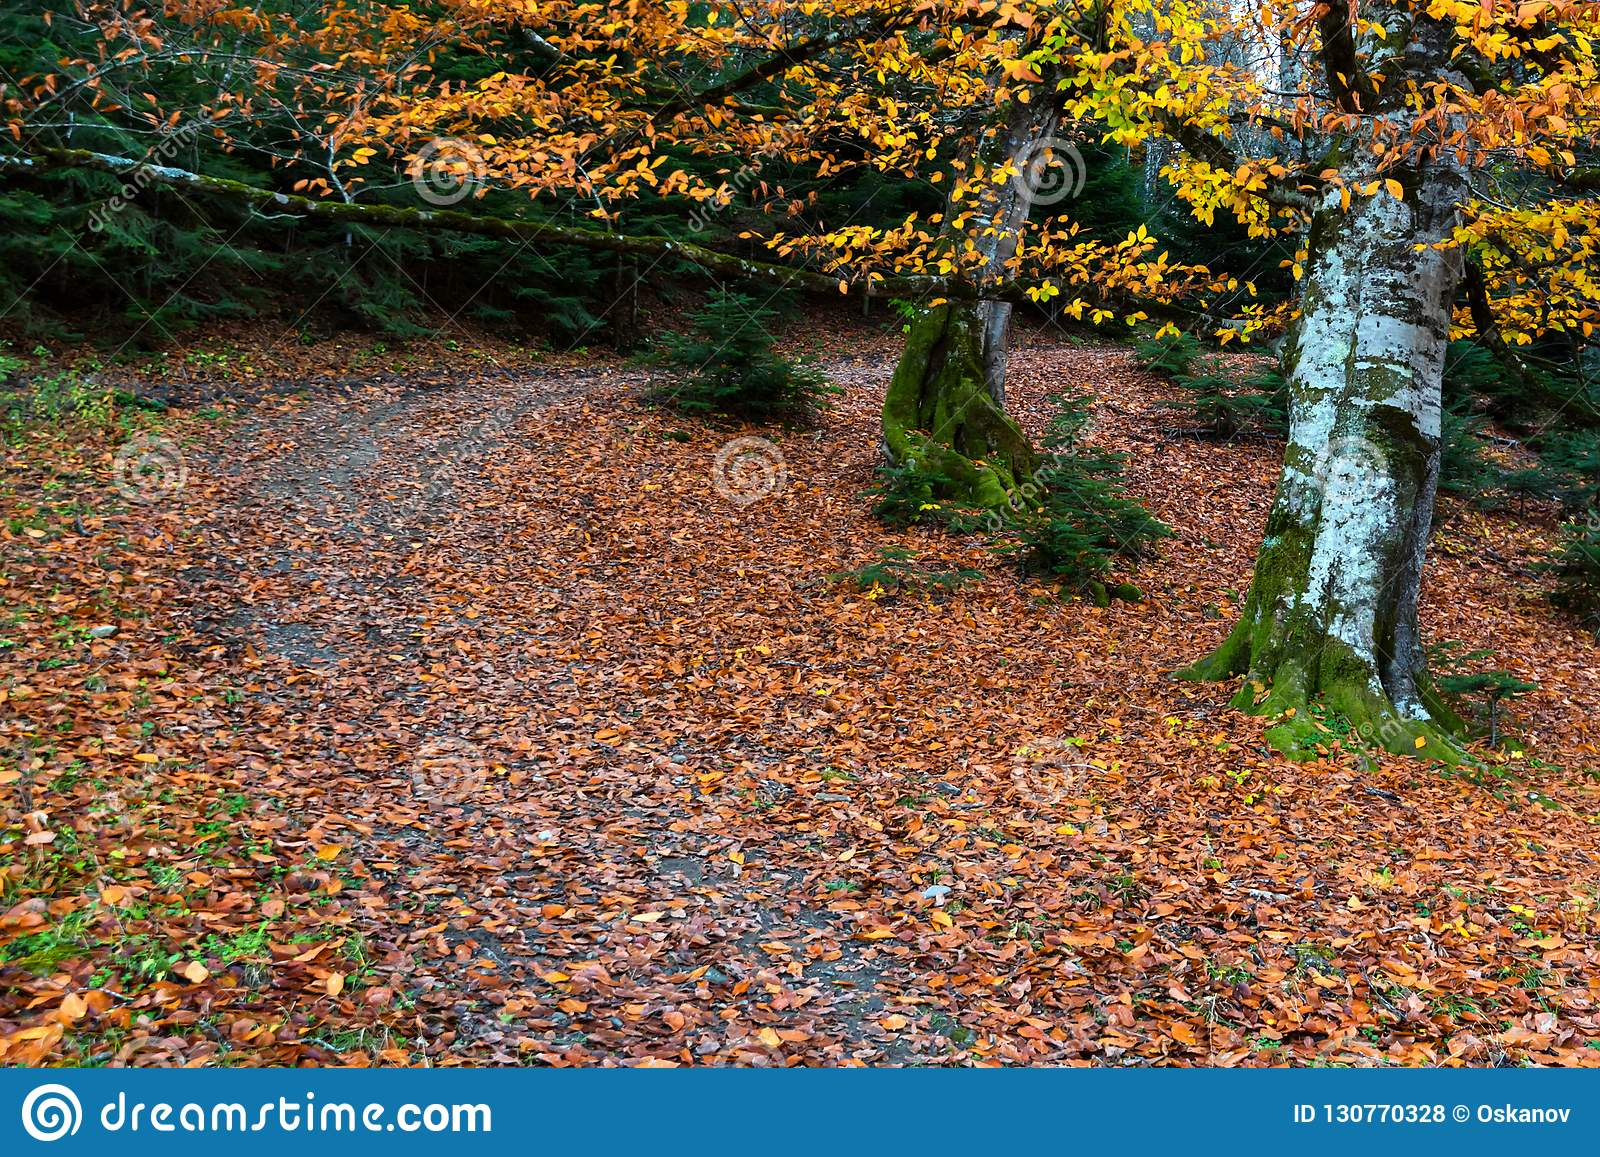 Big tree with yellow leaves in autumn forest